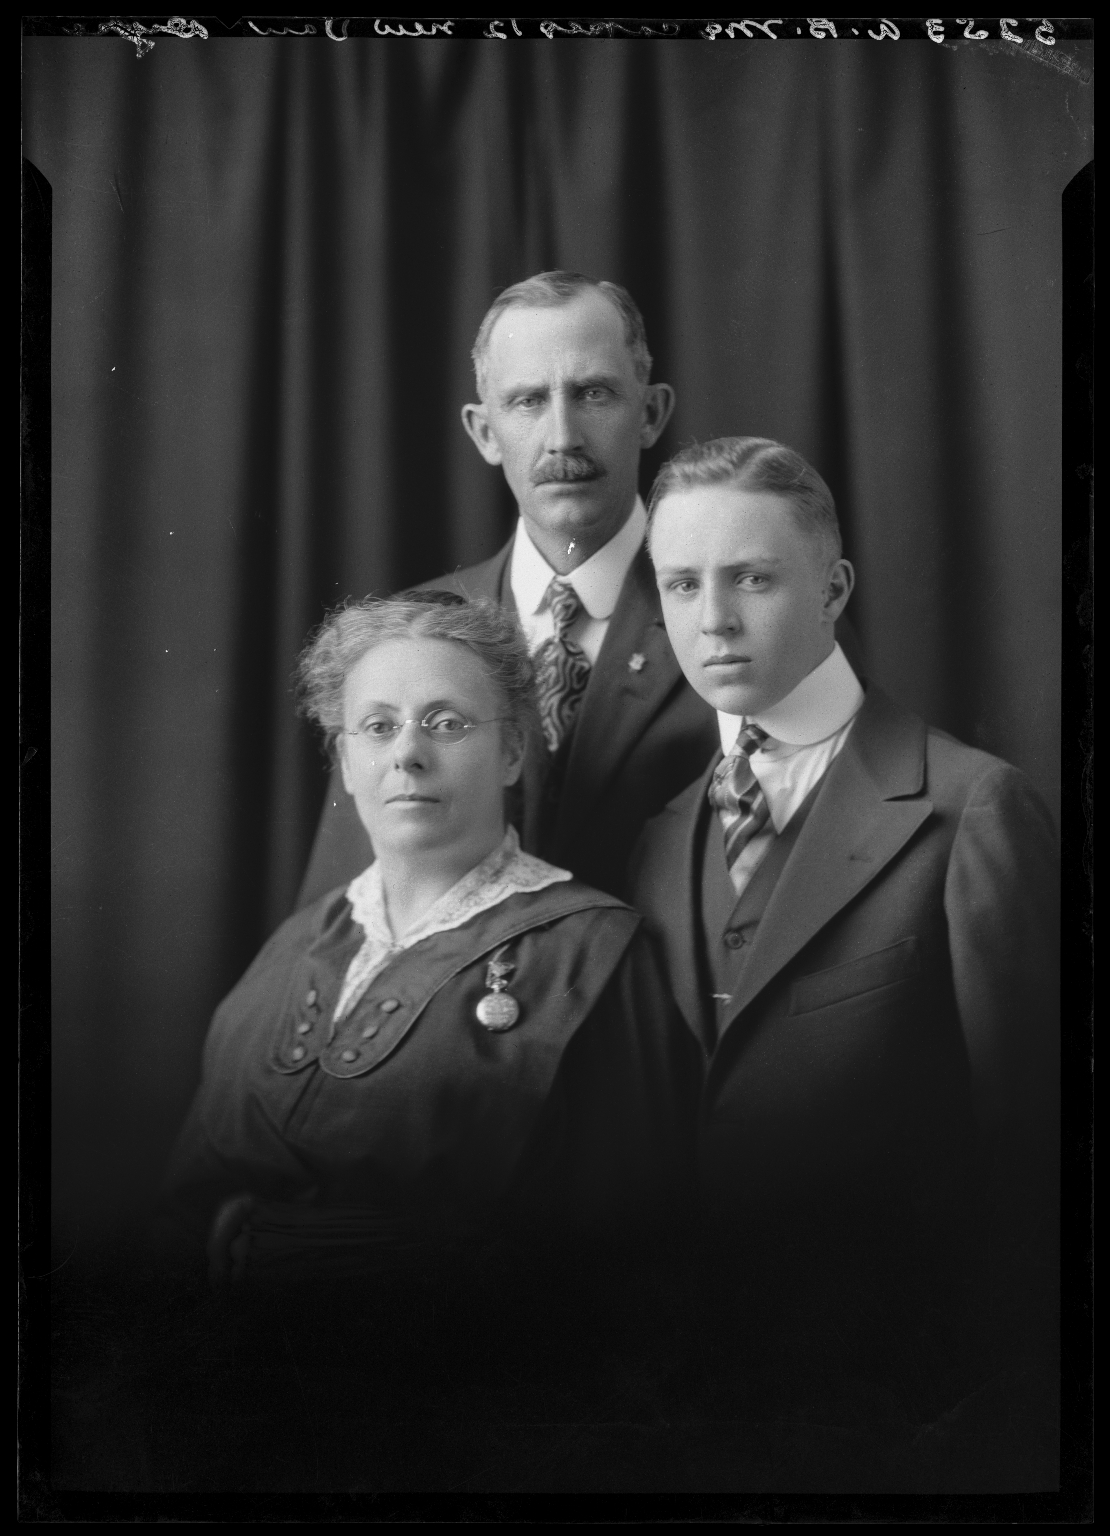 Portrait of A. B. Mocopes and family